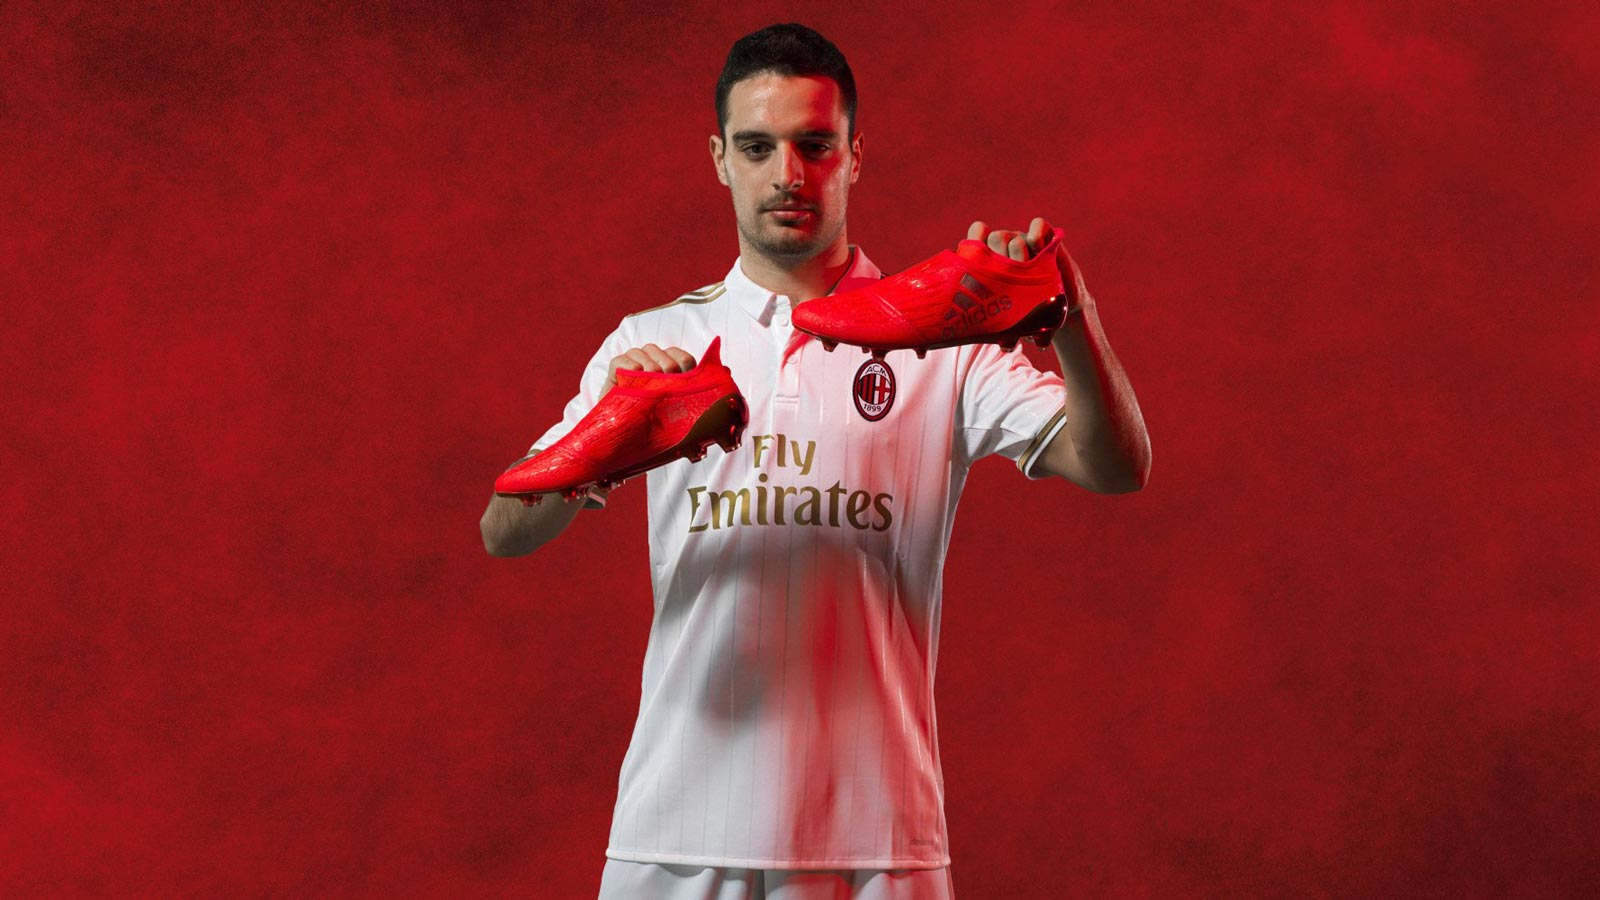 milan-16-17-away-kit-1.jpg